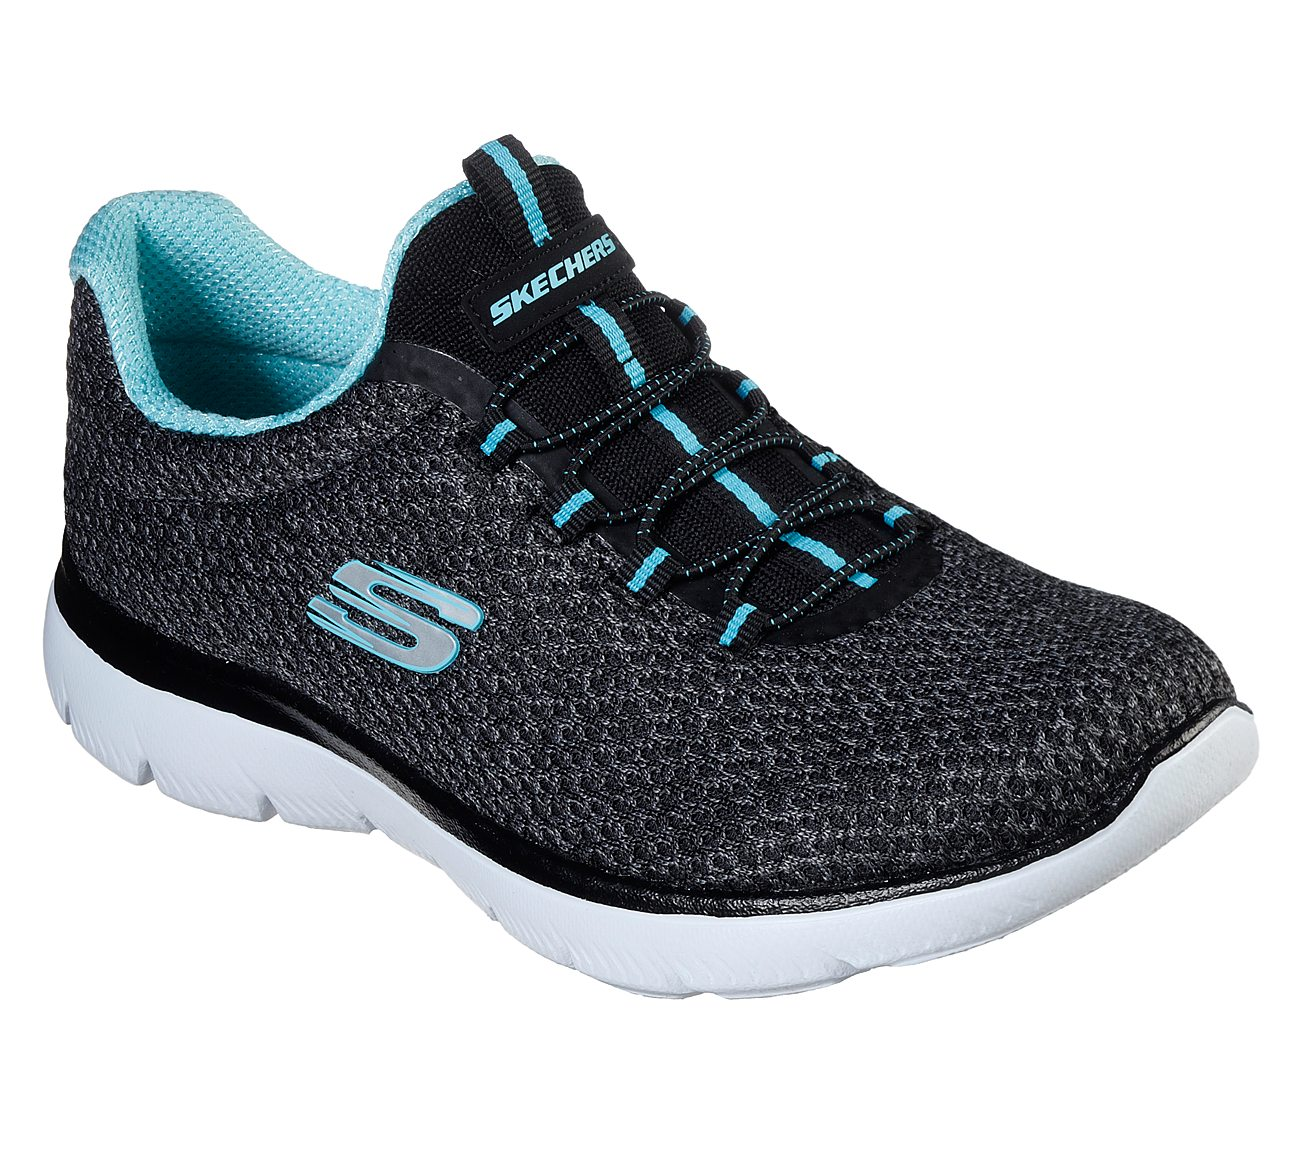 sketcher shoes for sale Sale,up to 71% DiscountsDiscounts